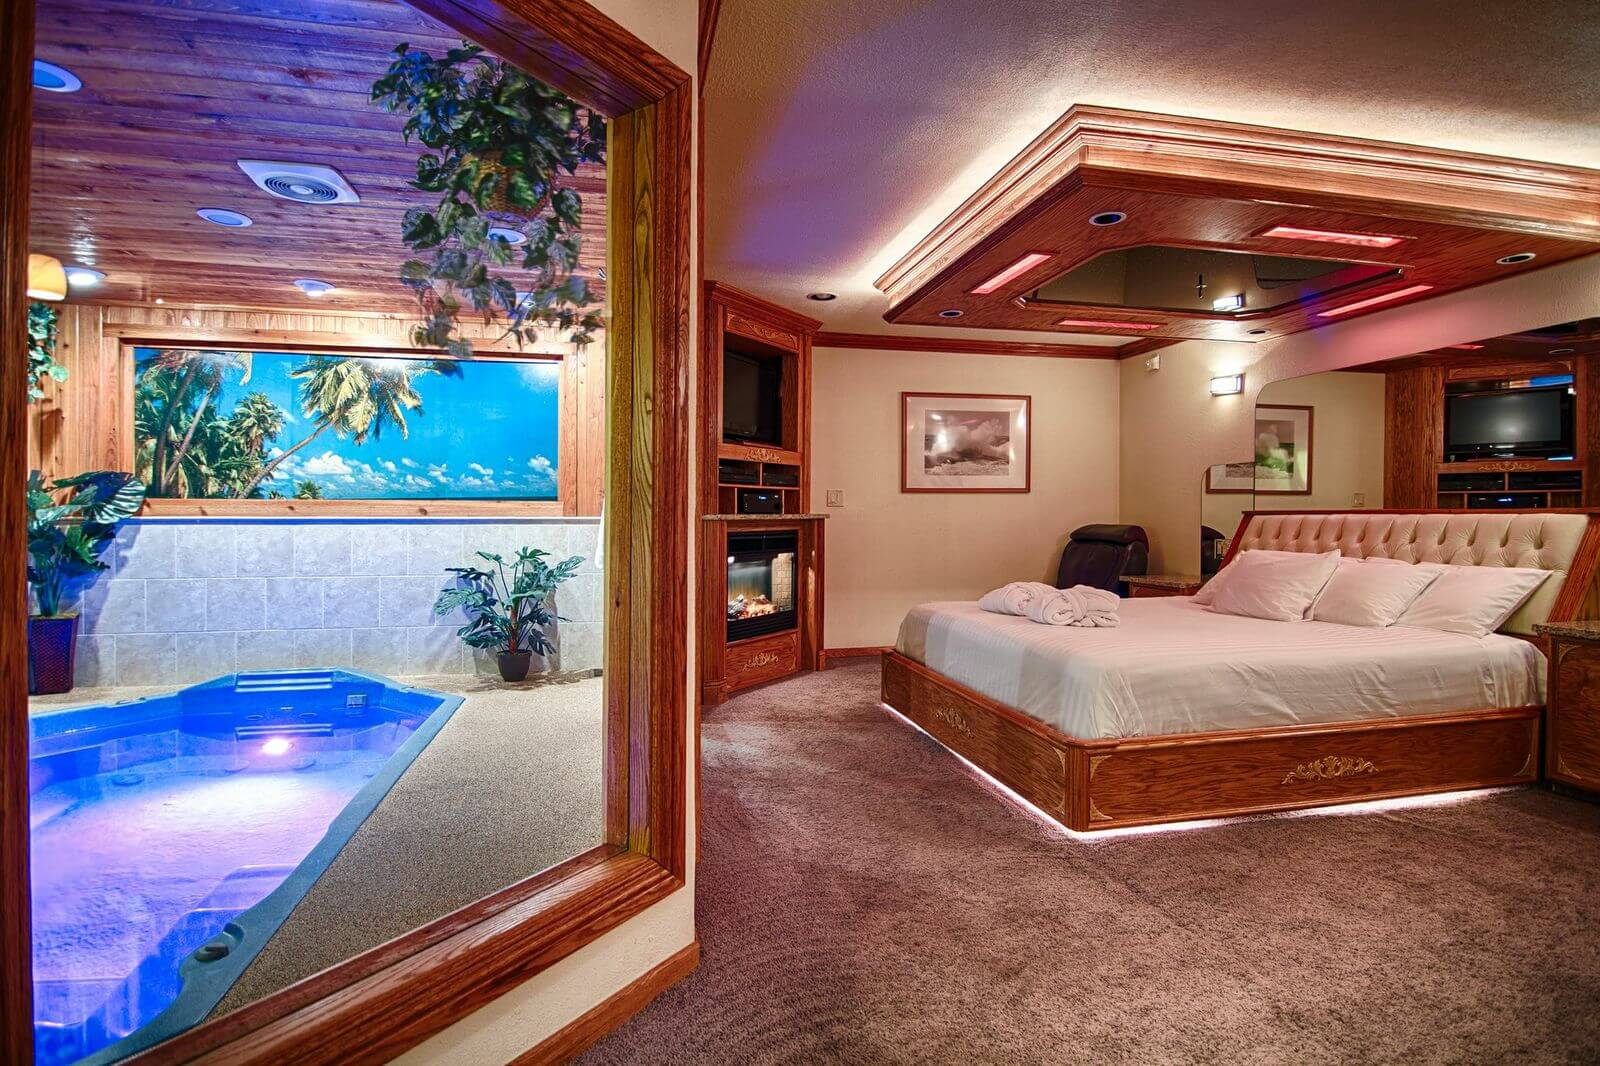 SWIM SPA SUITE - Learn more...